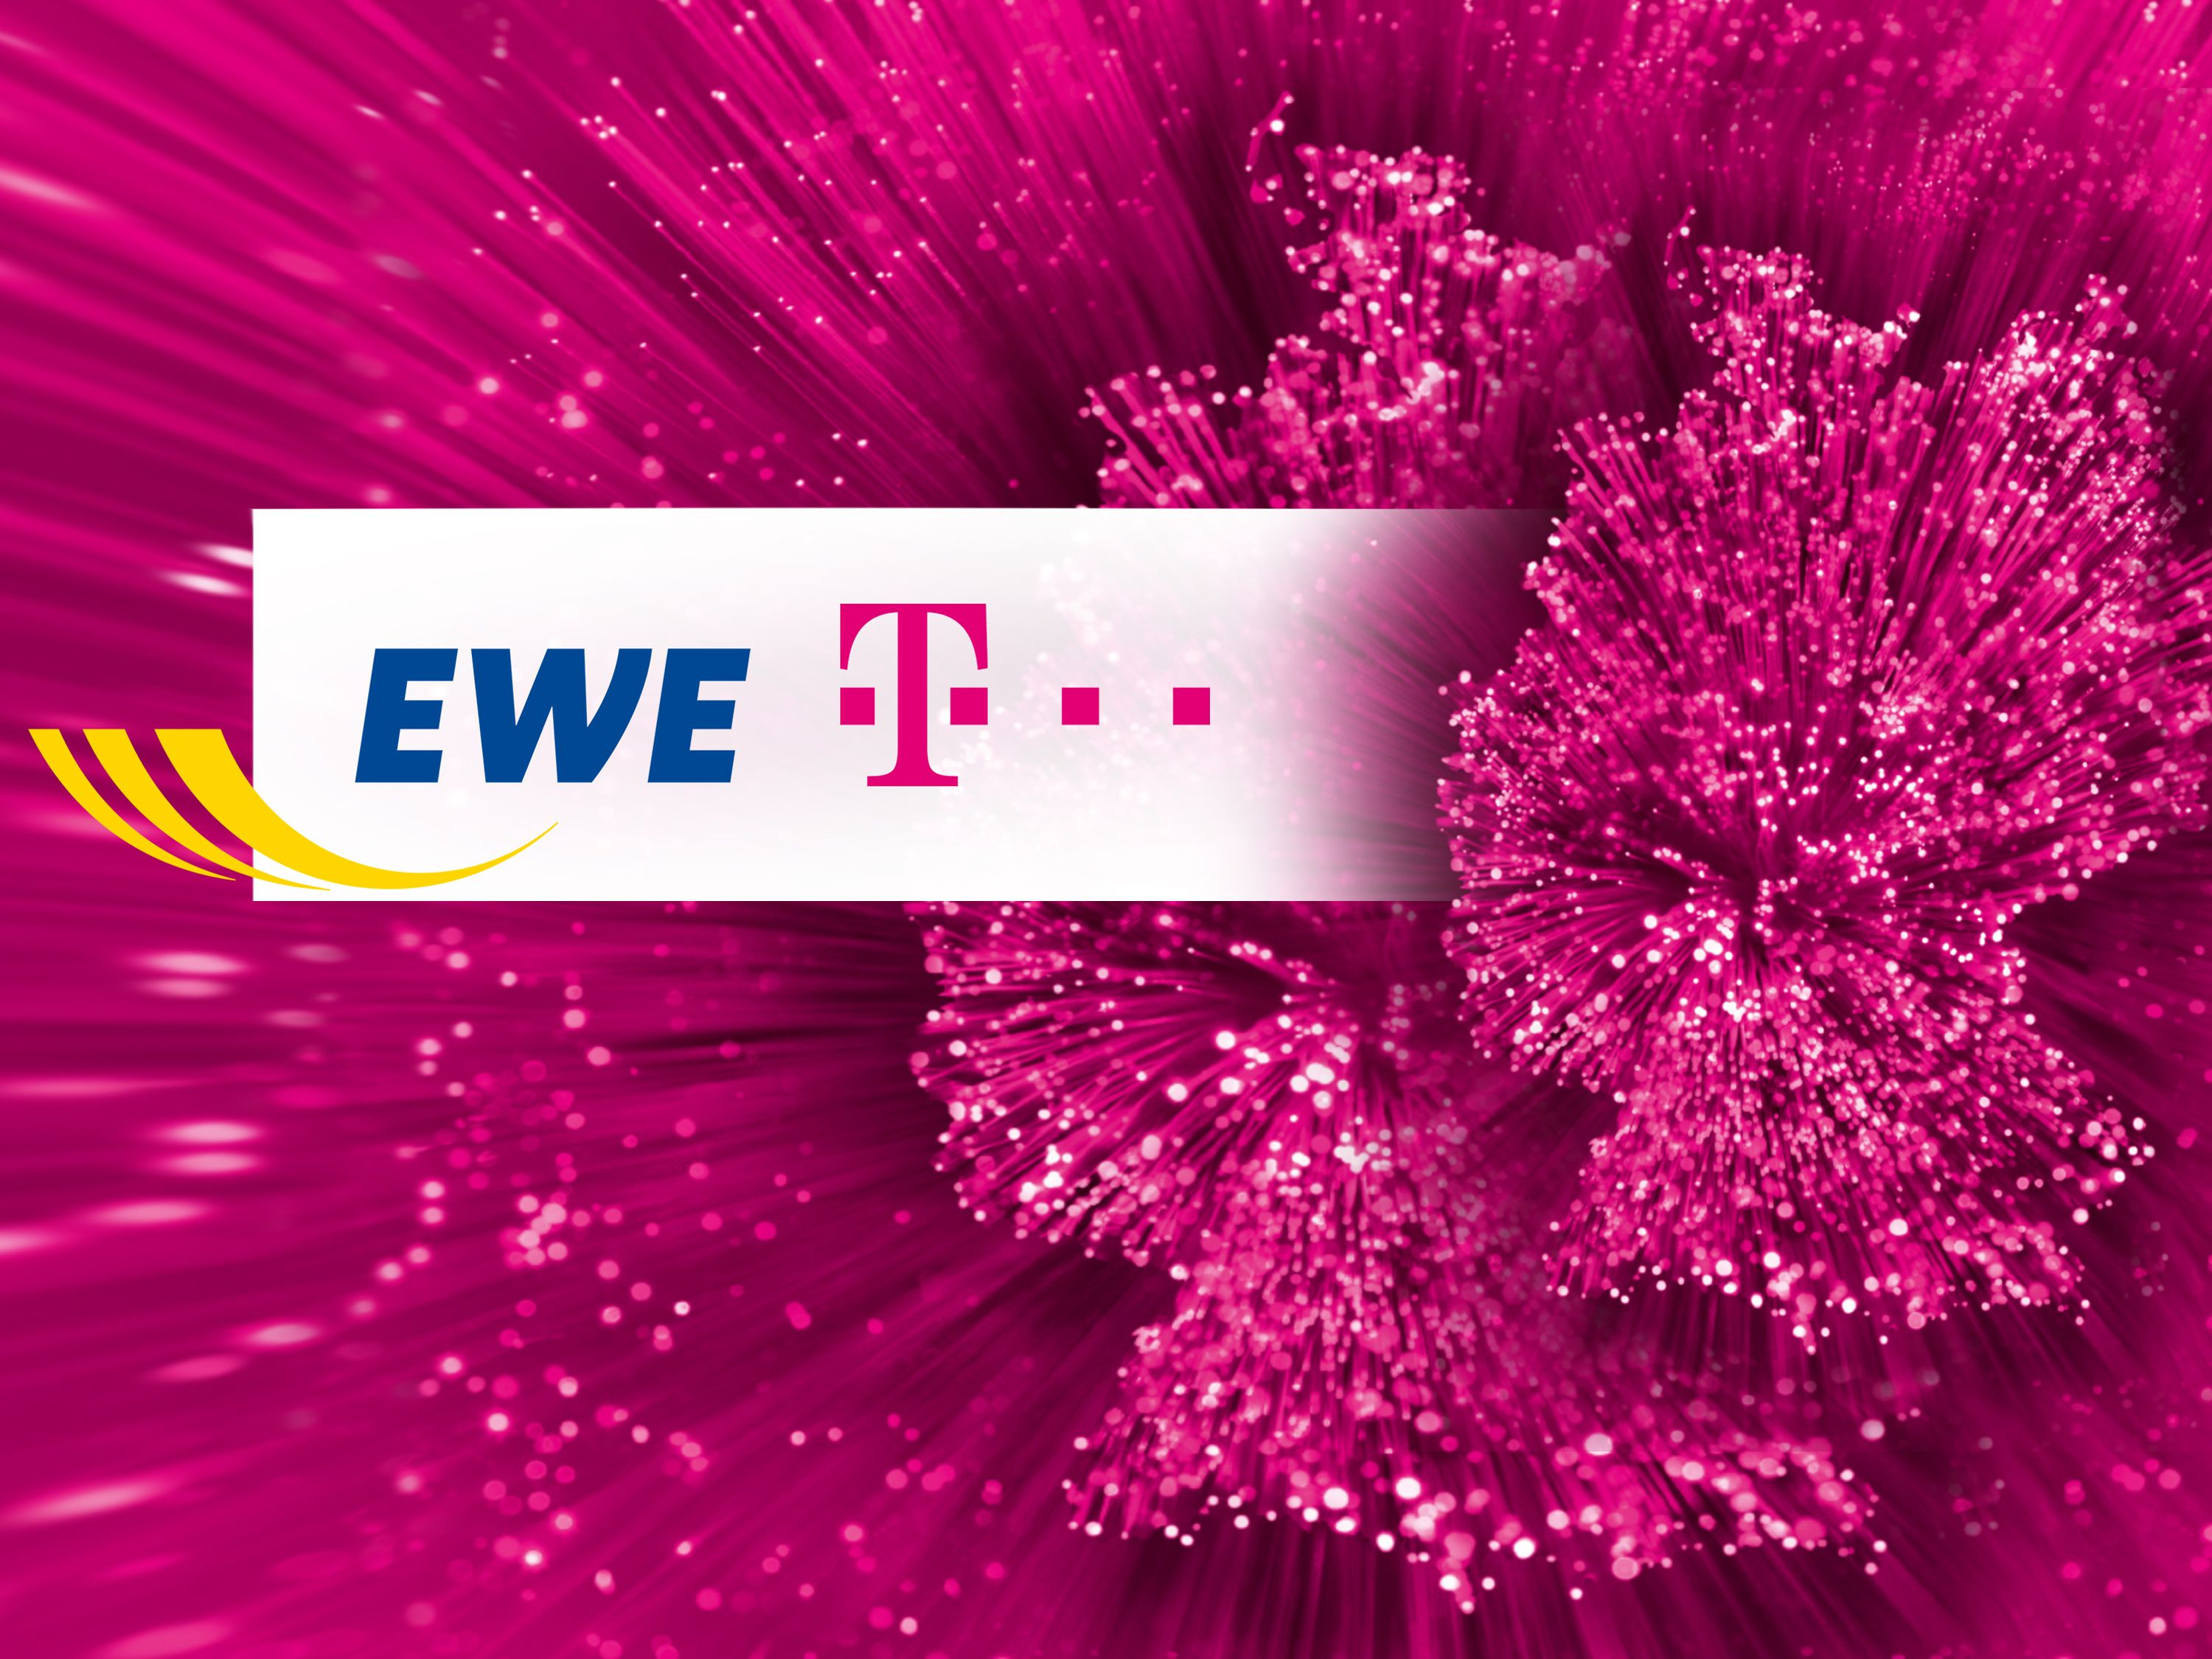 Deutsche Telekom and EWE are teaming up to provide faster connections